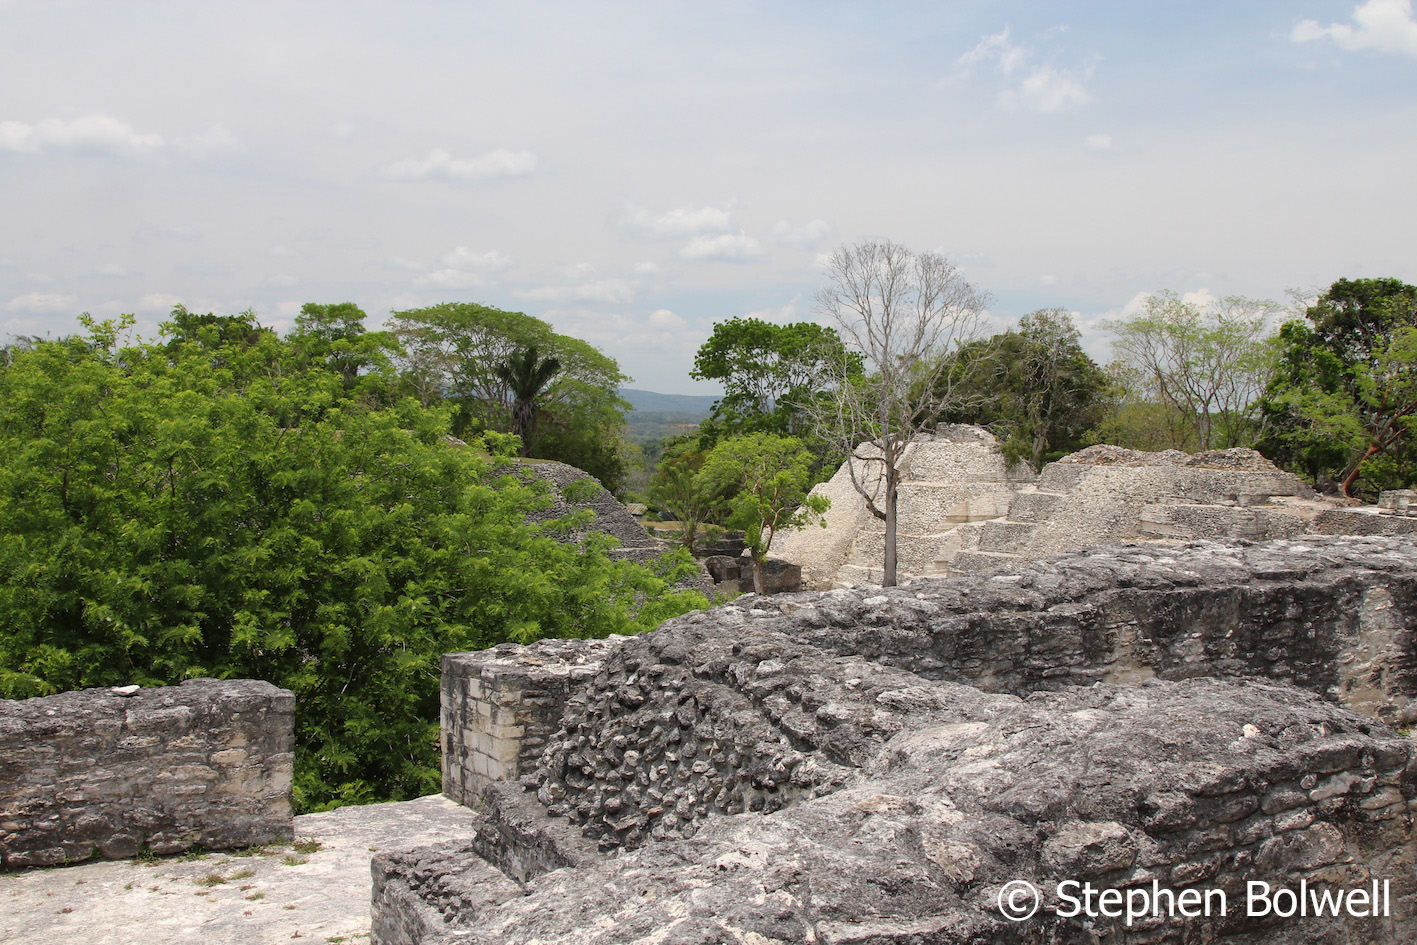 The Xunantunich Mayan ruins are set in sub-tropical forest... or more honestly, they are if you get your camera angles right. What each of us sees in a photograph mirrors our hopes and dreams - photographers are mostly there to fill in the dots of our wishful thinking.